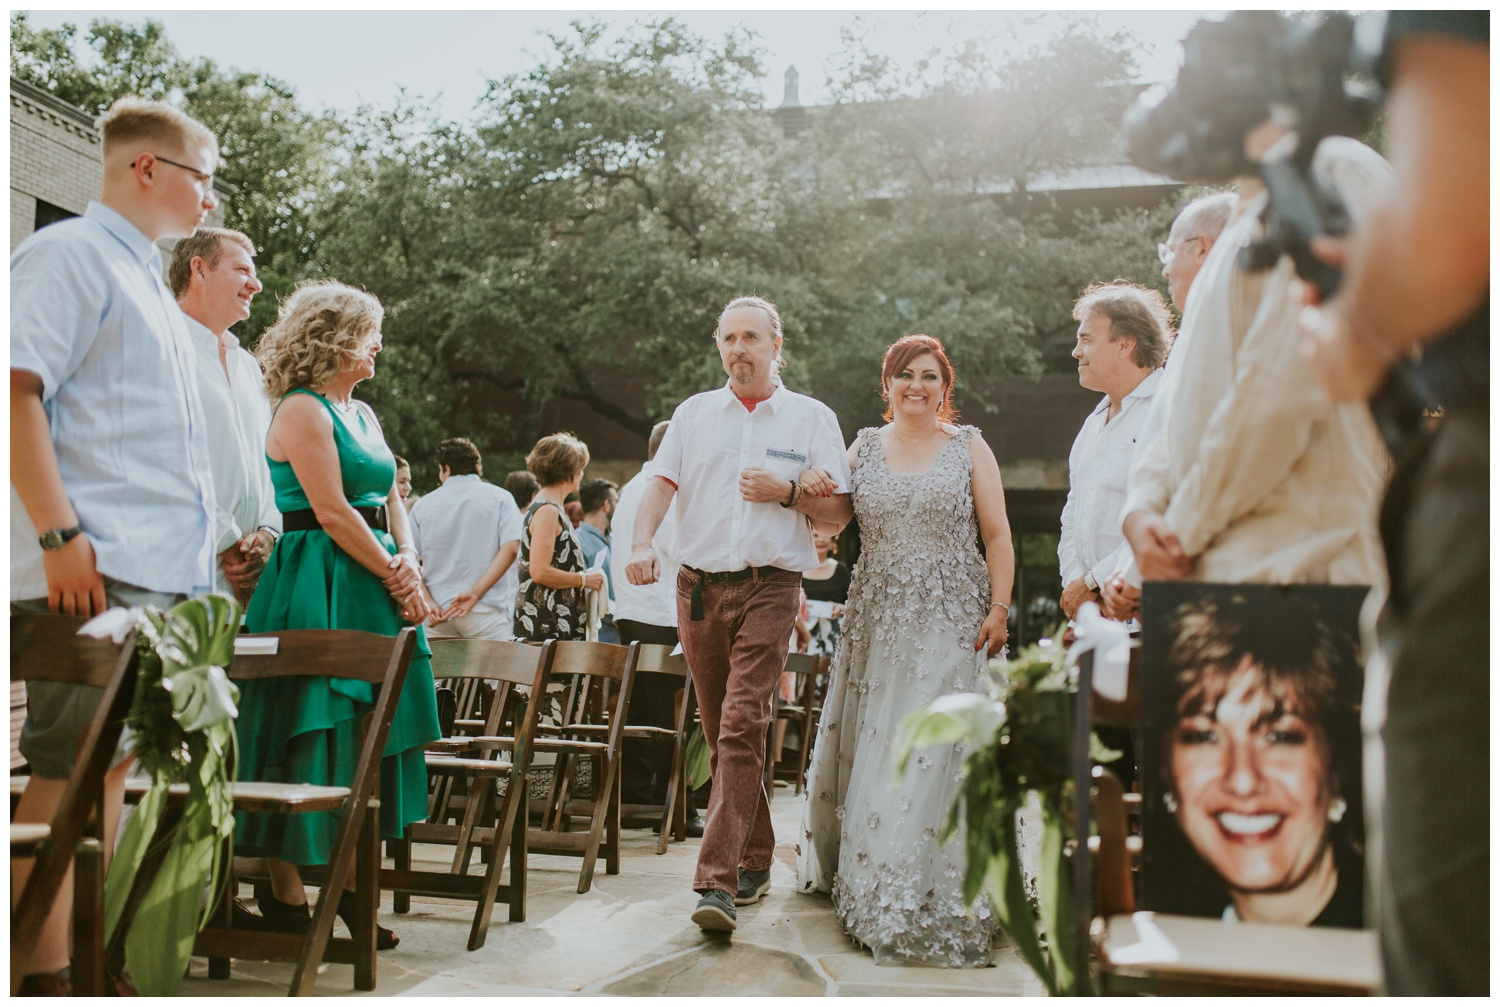 Ana + Sean || Jack Guenther Pavilion at the Briscoe Wedding San Antonio, Texas (Joshua and Parisa – Contista Productions)_0059.jpg